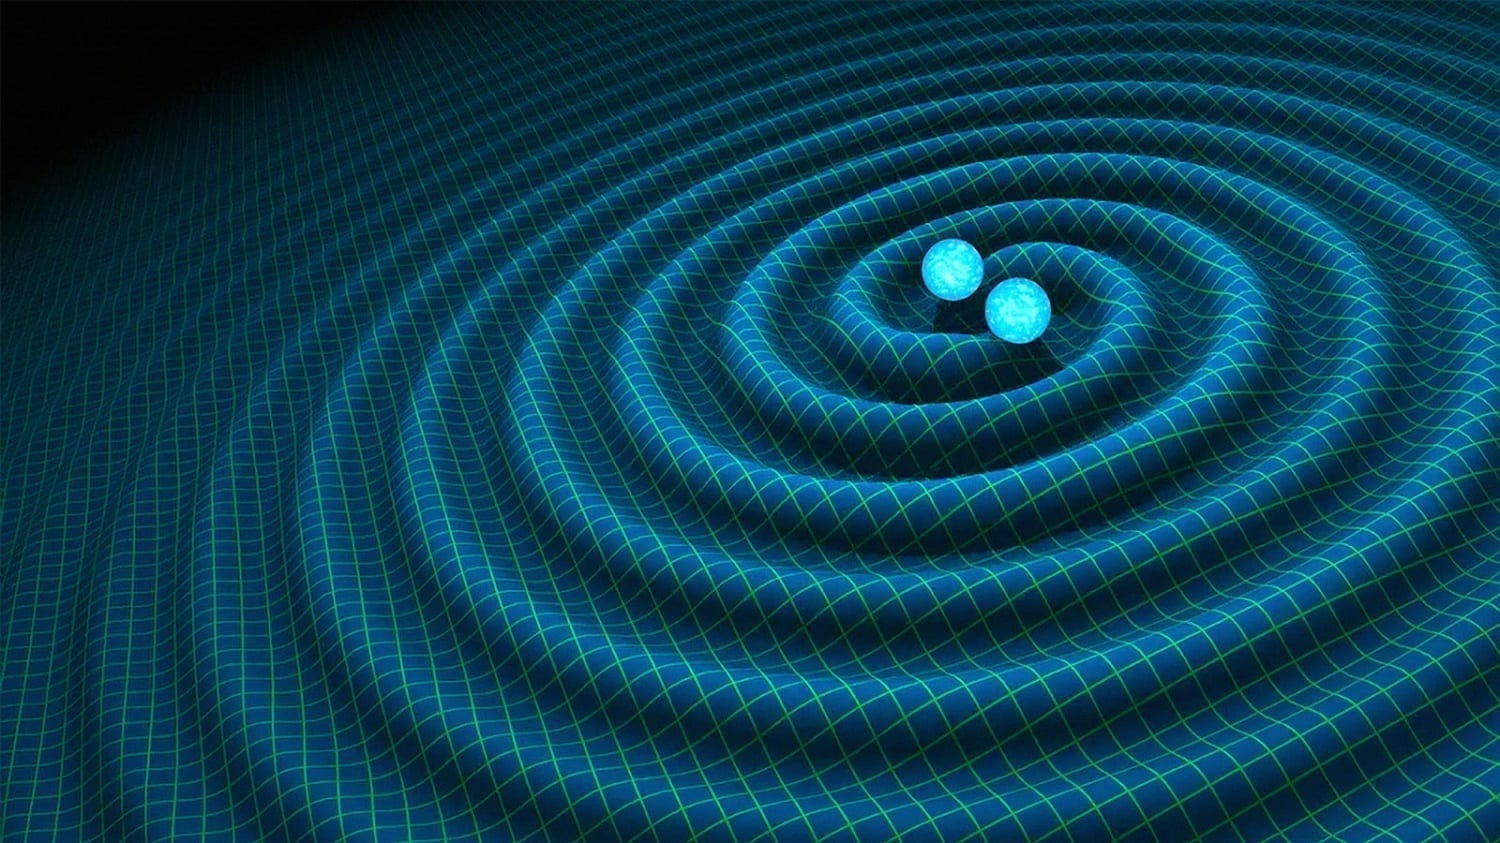 artist's grid showing gravitational waves around two circling stars, photo credit: NASA